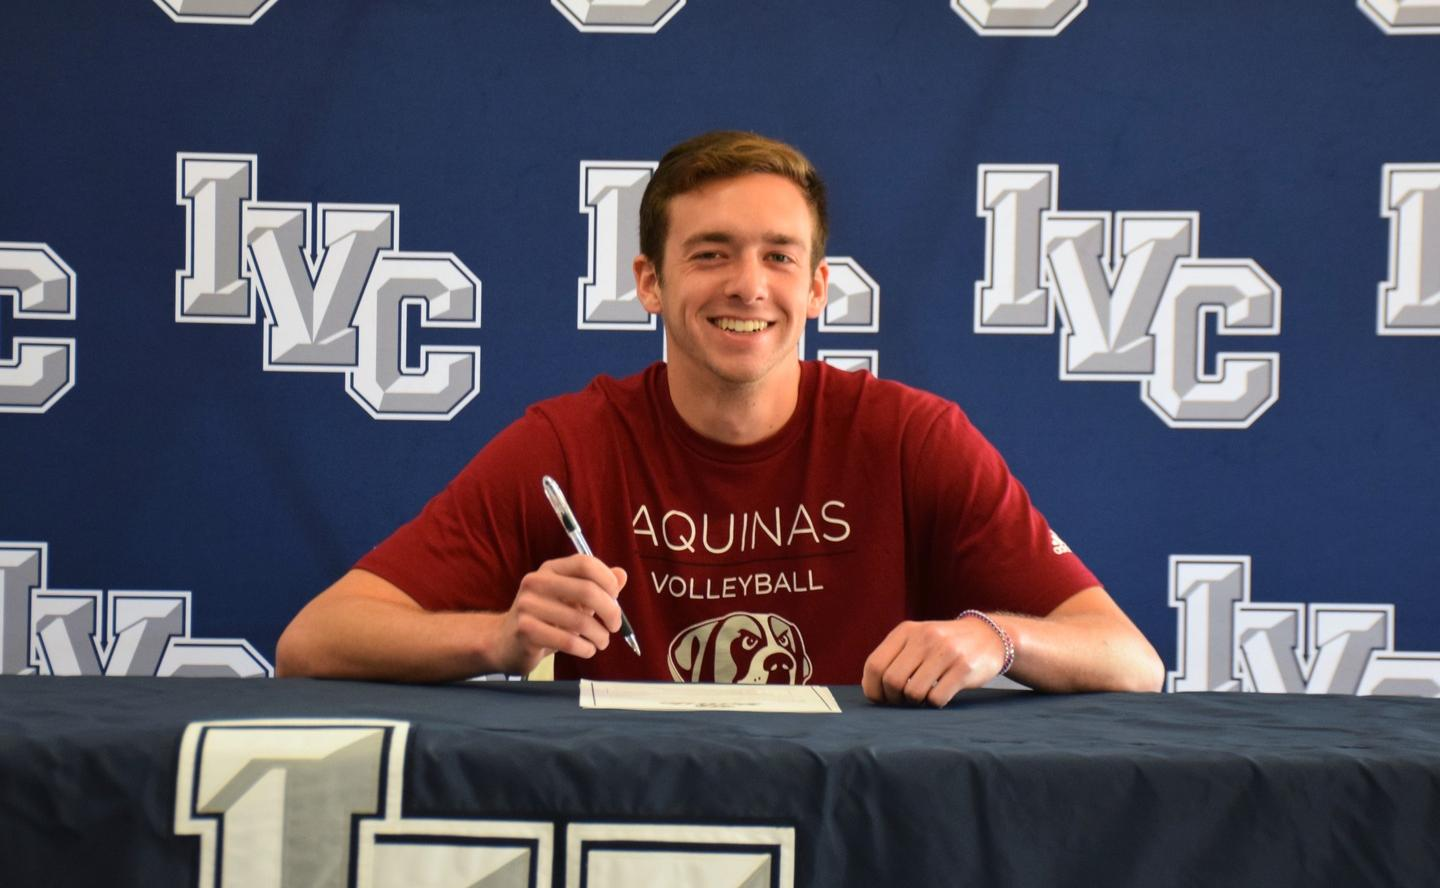 Men's volleyball player Ruben Lopez signs with Aquinas